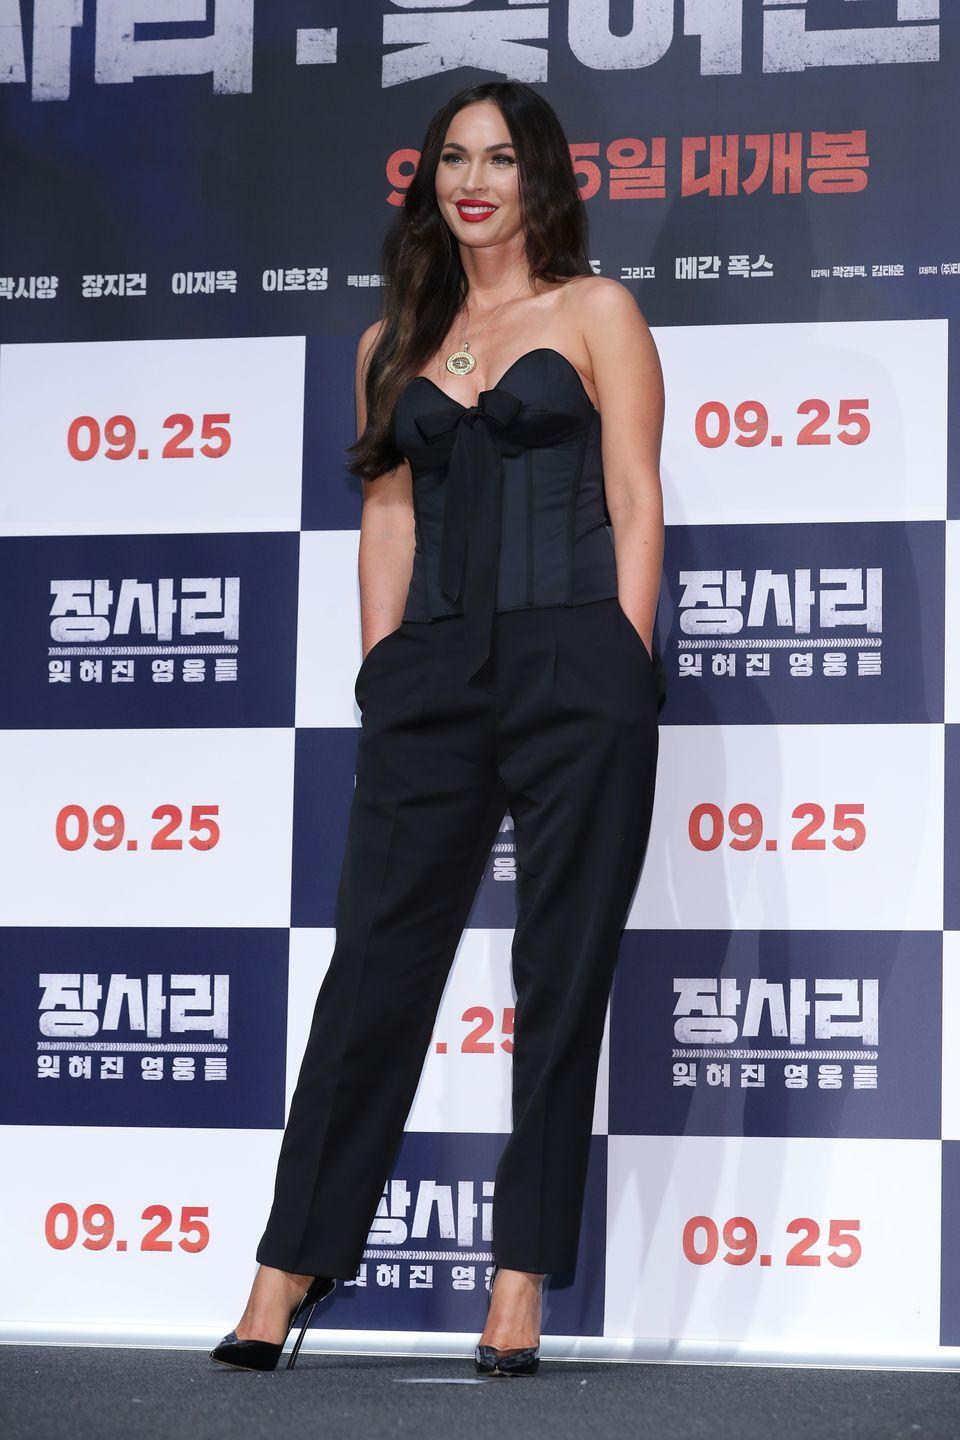 <p>Fox attended the press conference for 'Battle Of Jangsari' in South Korea wearing a black panelled corset, black suit trousers and black heels. </p>